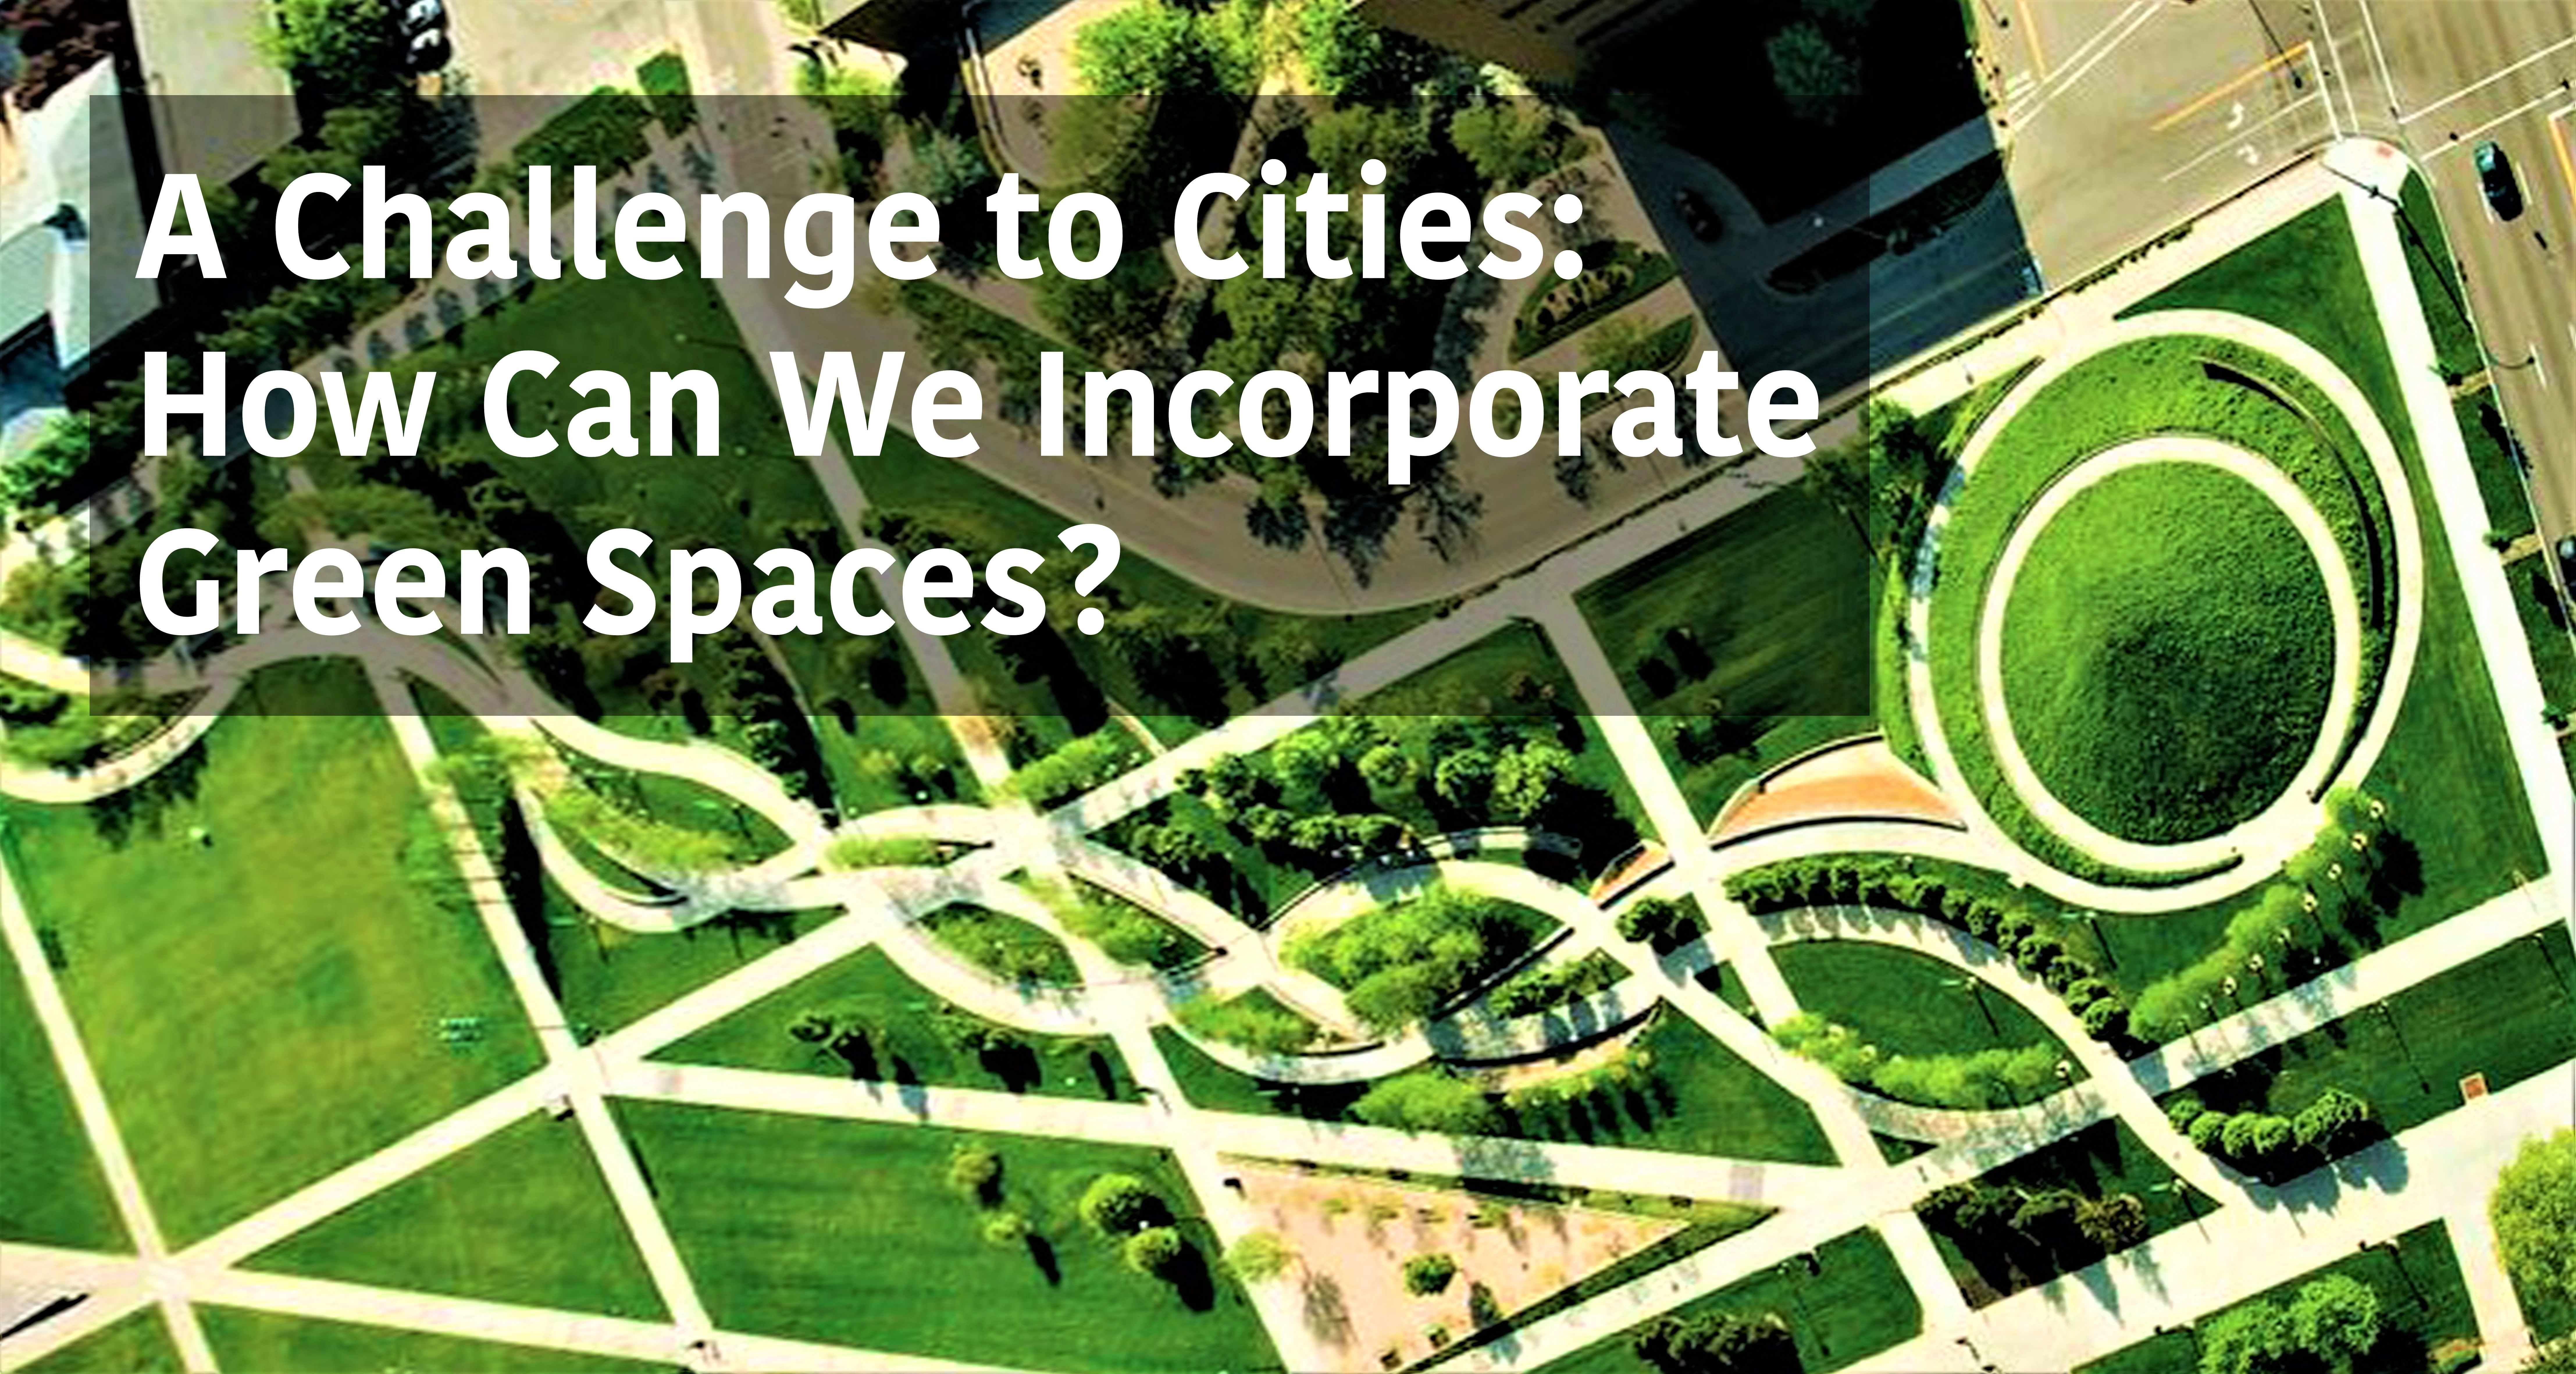 A Challenge To Cities How Can We Incorporate Green Spaces Green